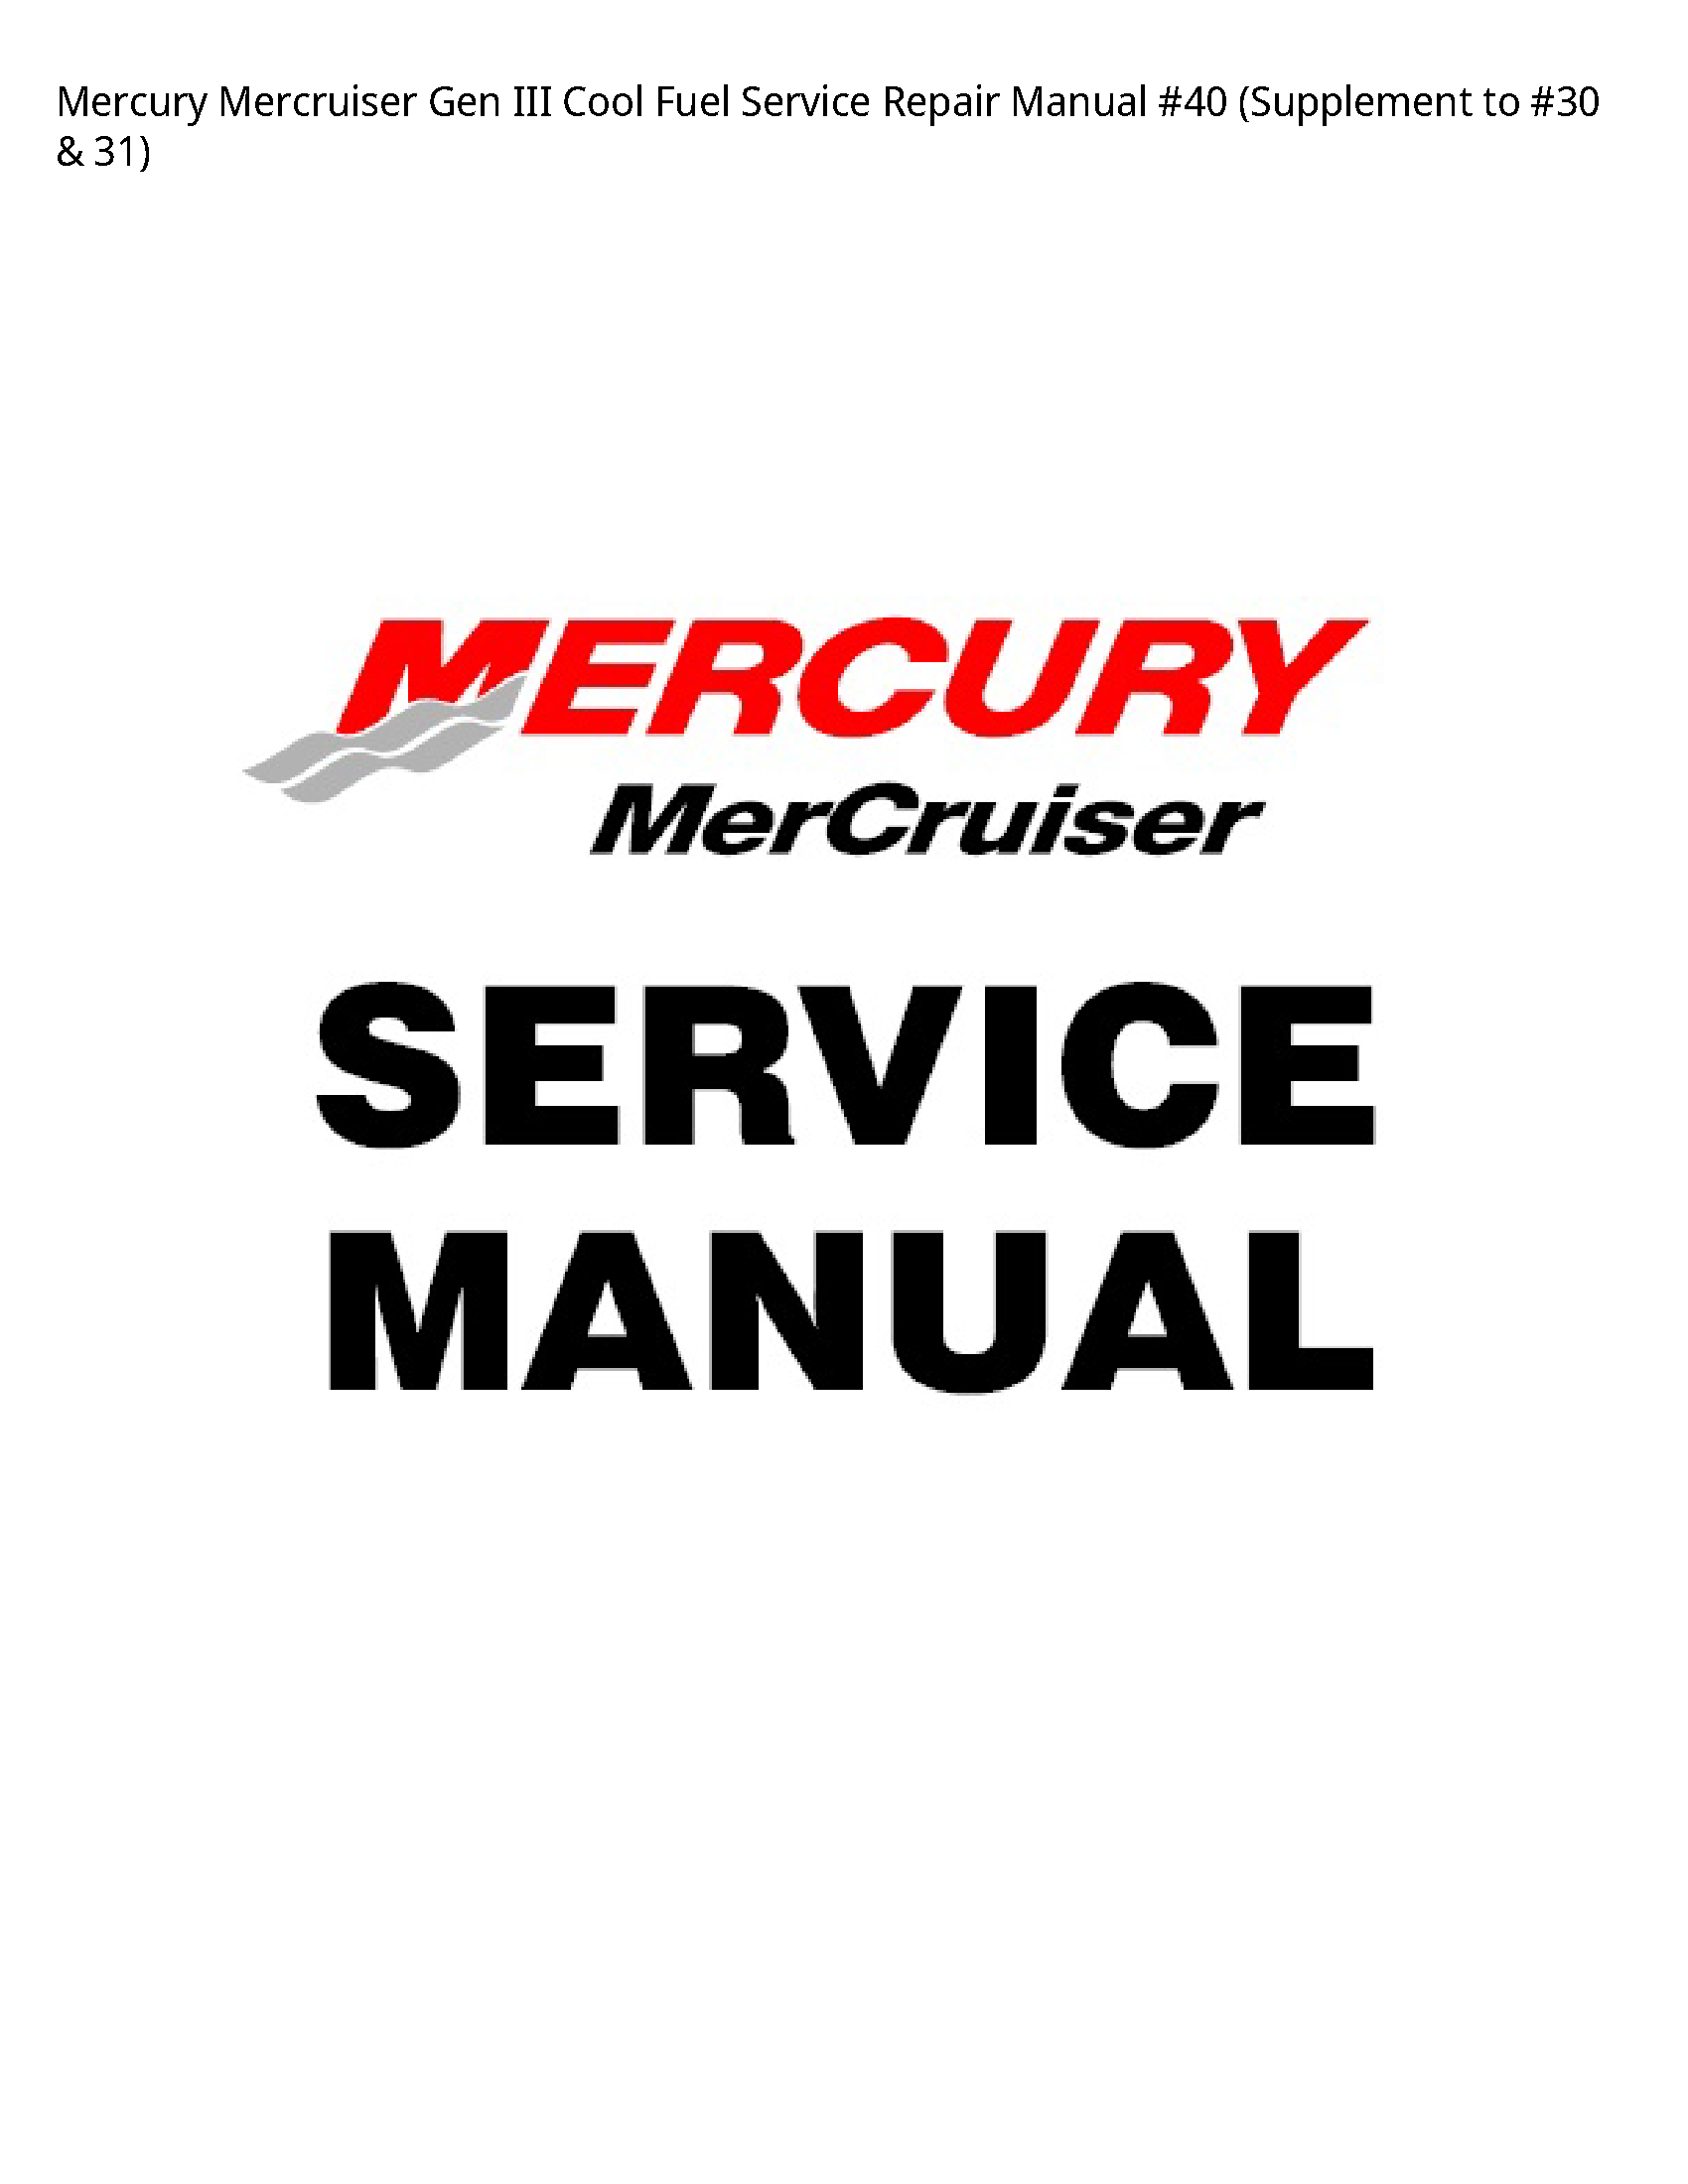 Mercury Mercruiser Gen III Cool Fuel manual